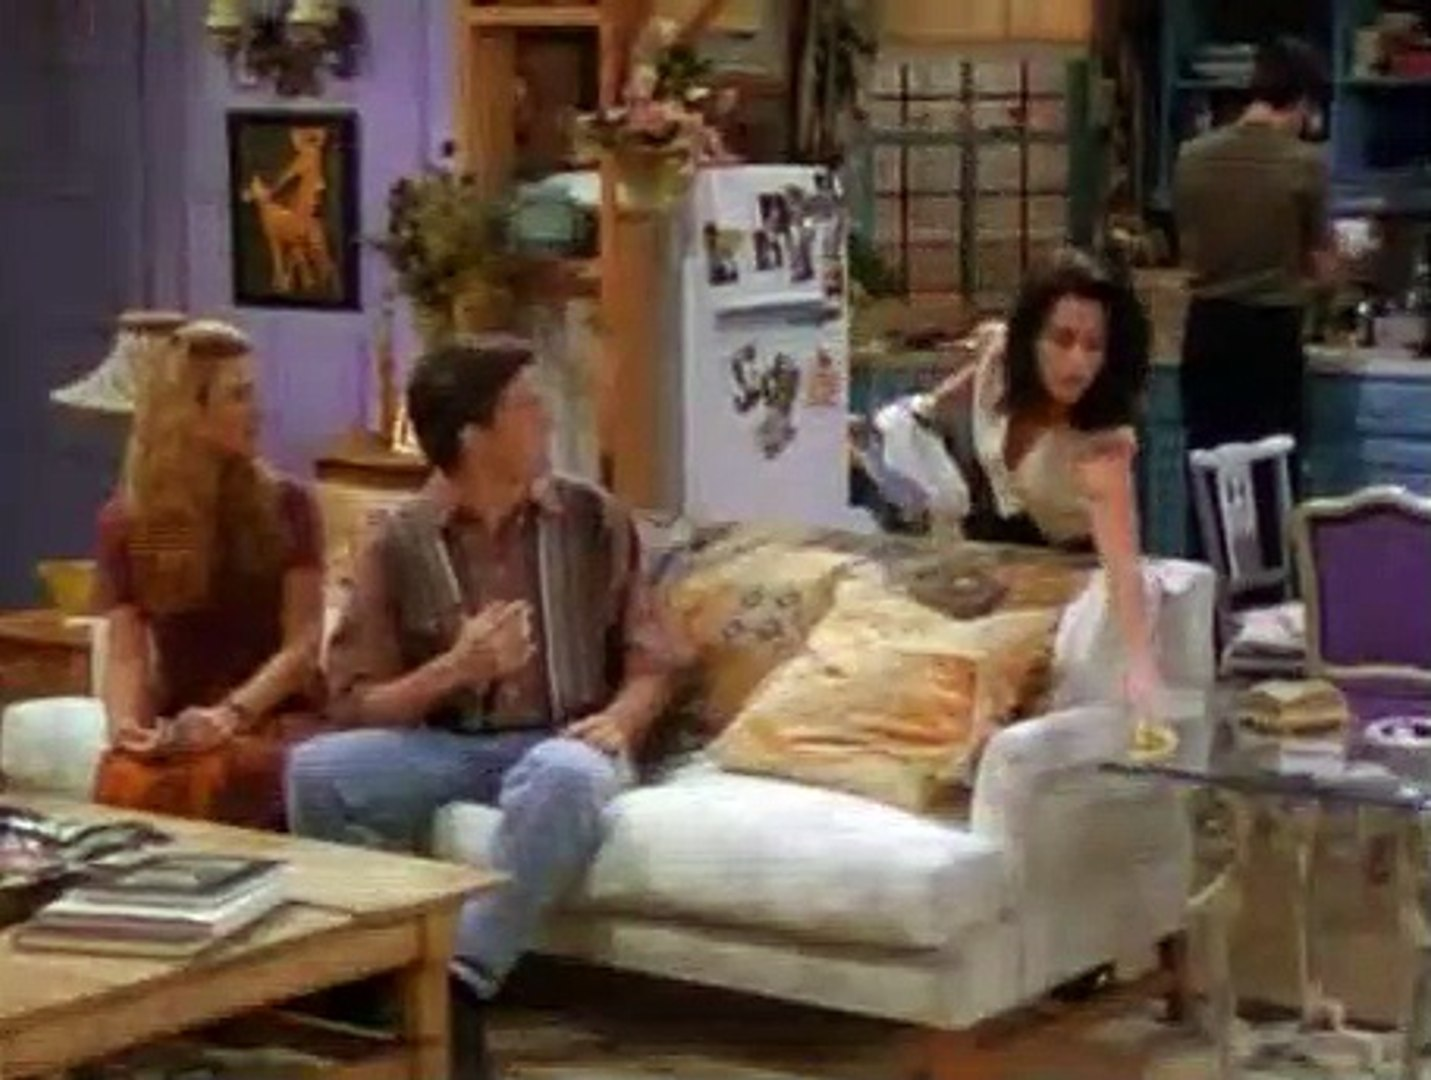 Friends S01E02 - The One With the Sonogram at the End - Video Dailymotion